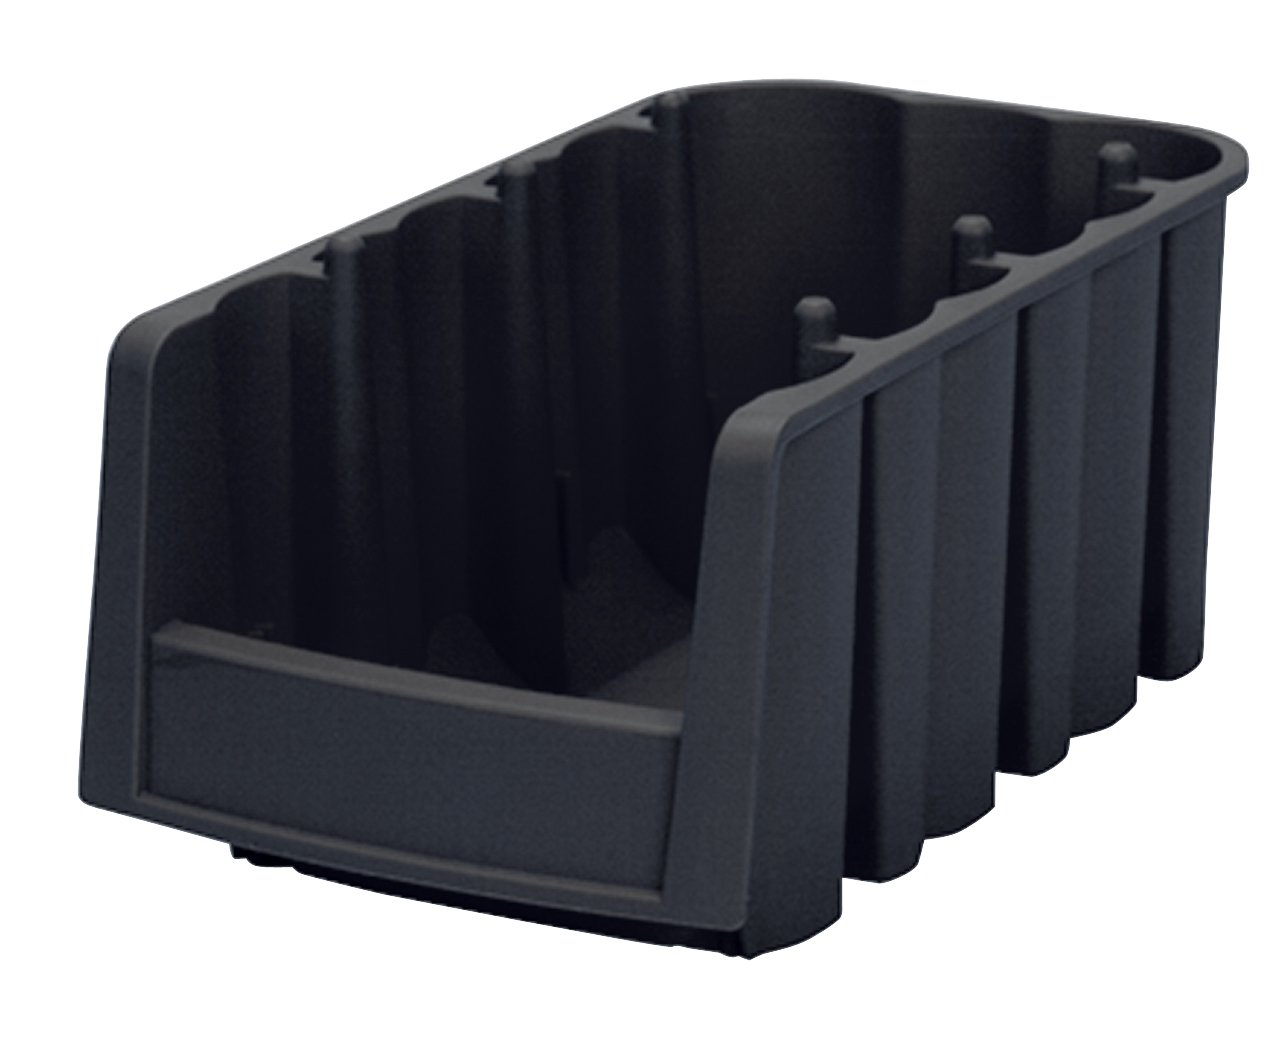 Akro-Mils 30796 Economy Stacking Nesting Plastic Storage Bin, 8-7/8-Inch Long by 6-5/8-Inch Wide by 5-Inch High, Black, Case of 10